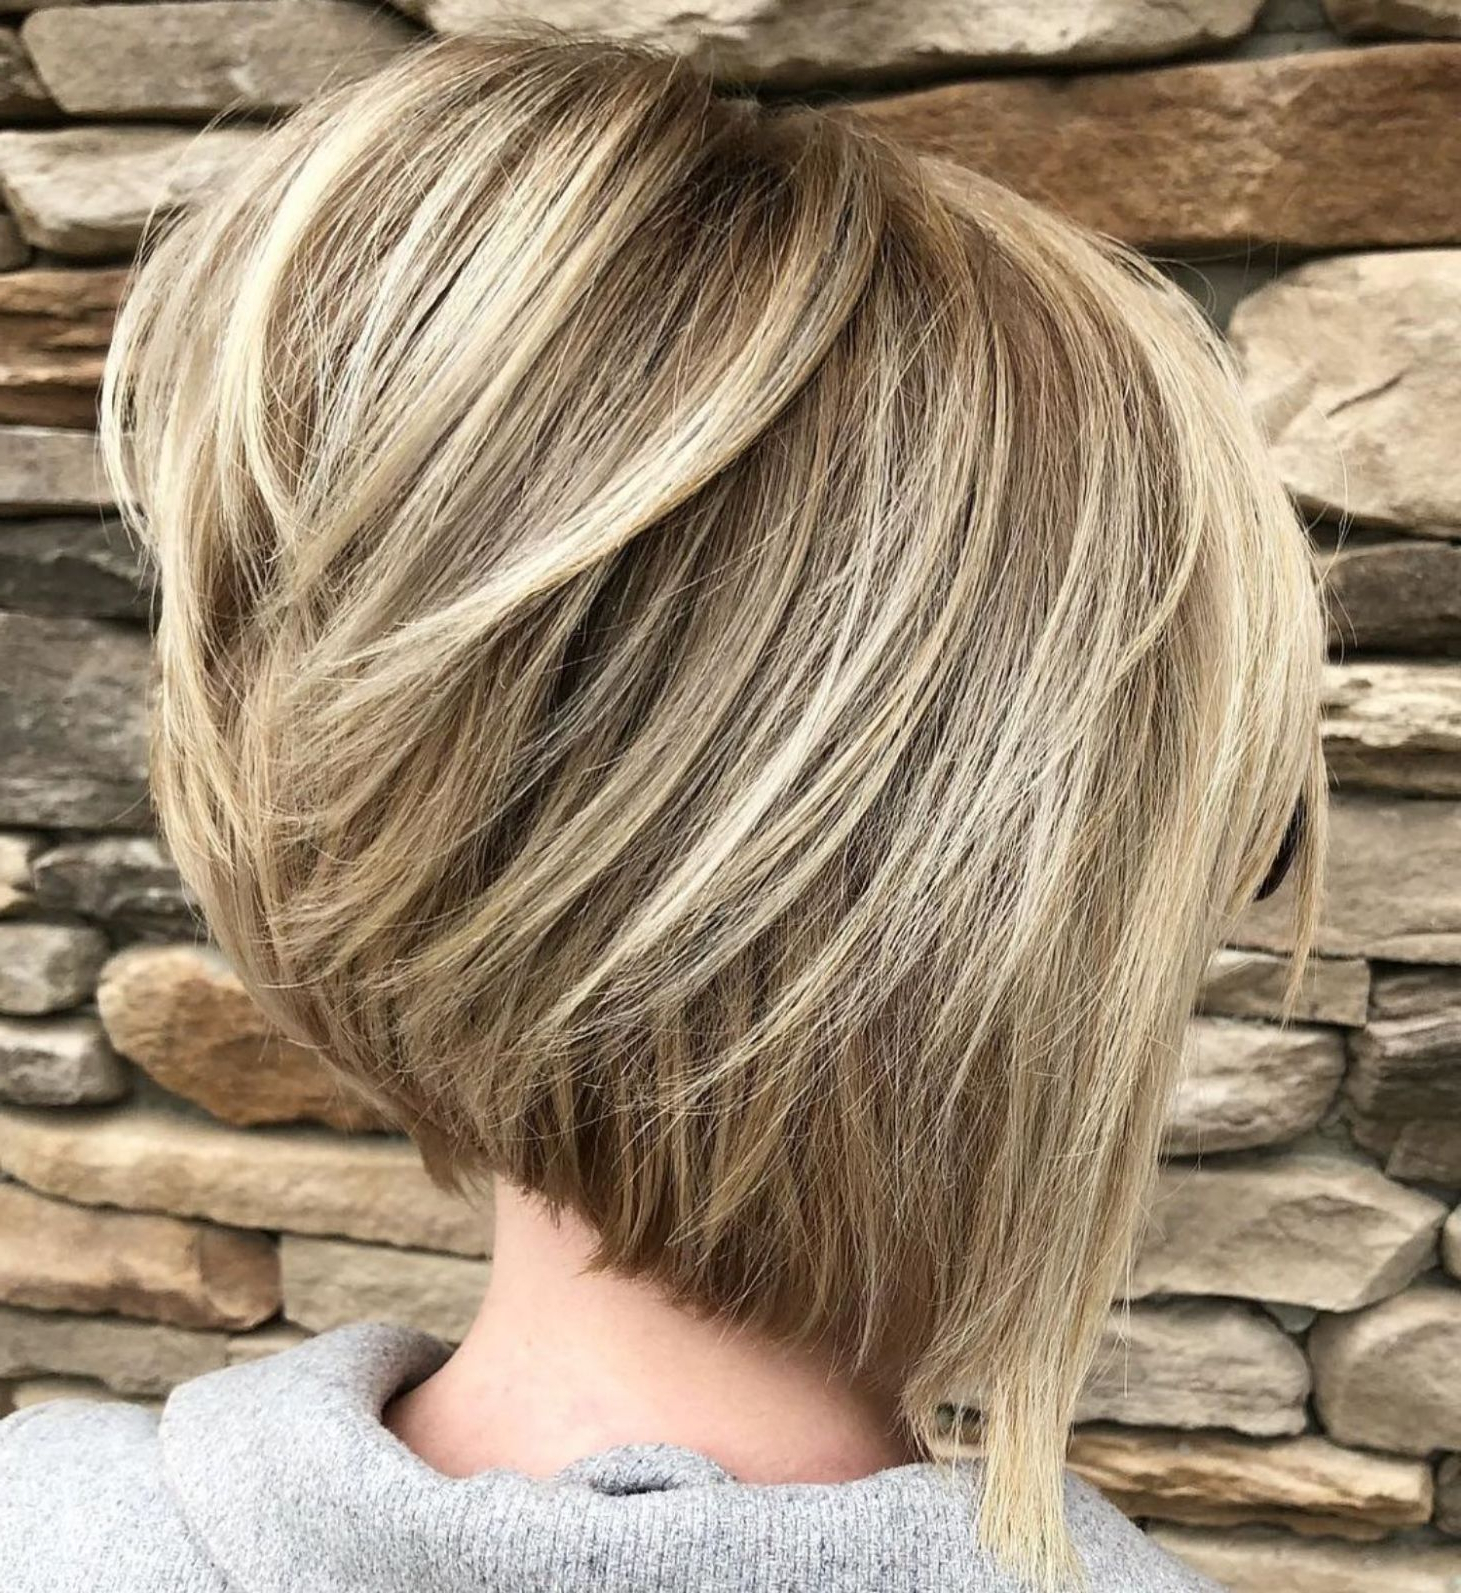 60 Layered Bob Styles: Modern Haircuts With Layers For Any Occasion With Stacked Blonde Balayage Bob Hairstyles (View 9 of 20)